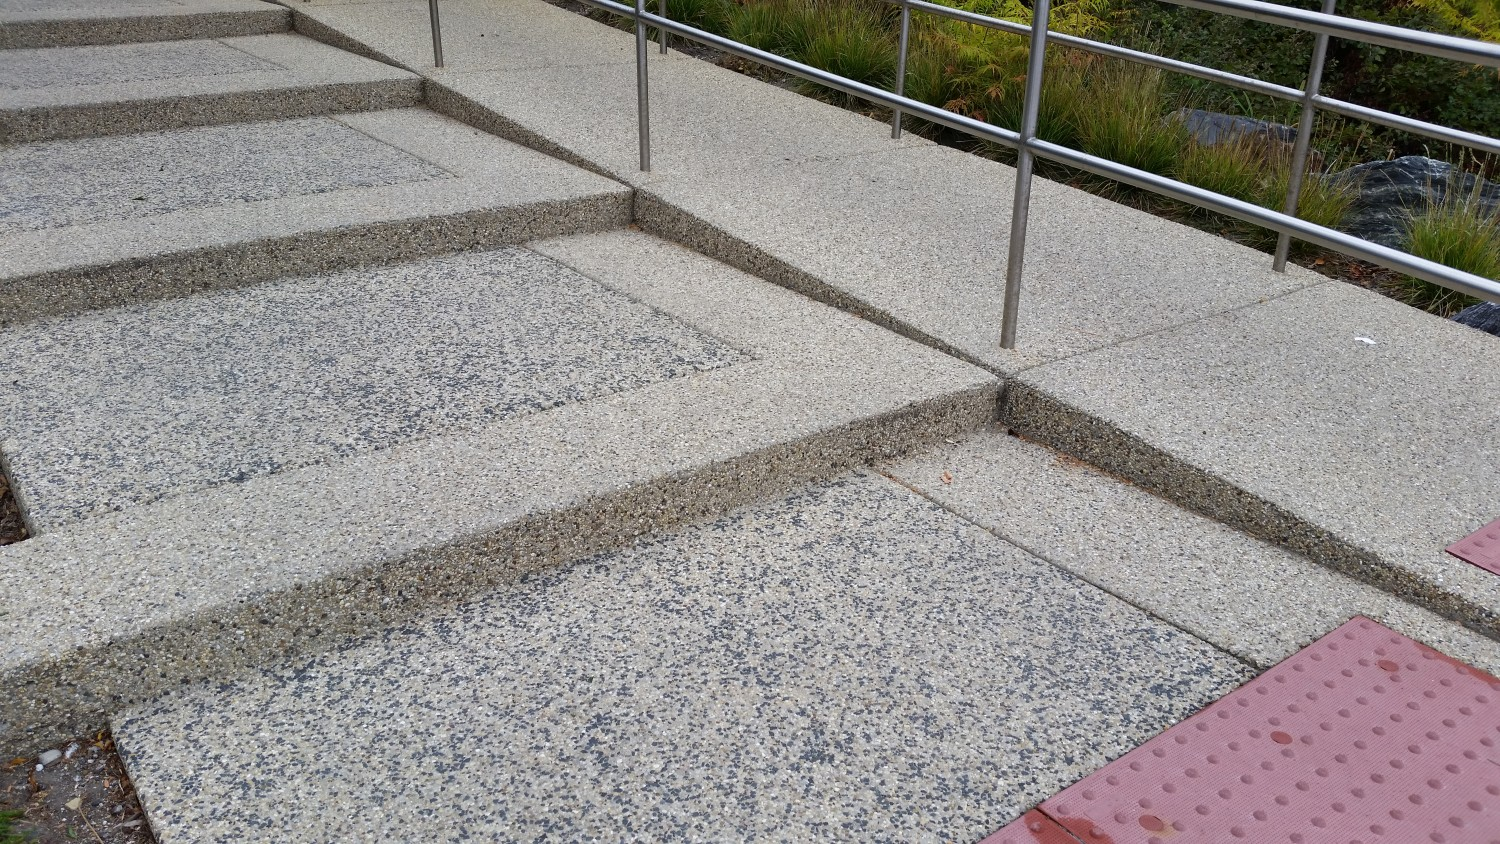 Exposed Aggregate Stairs With Seeded Color And Ramp